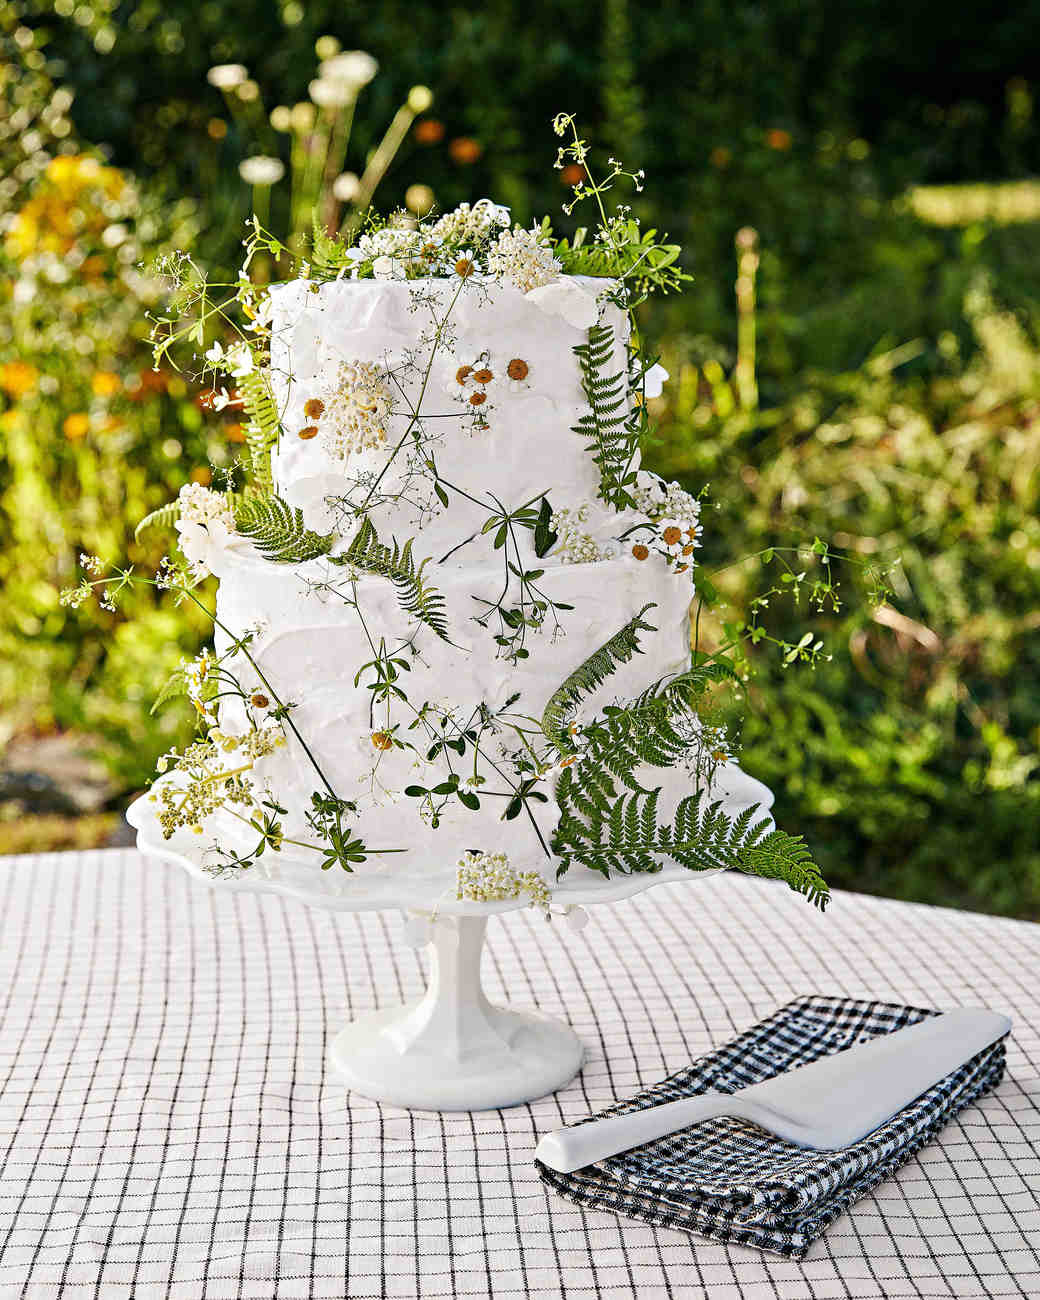 avril quy wedding new york cake flowers green white